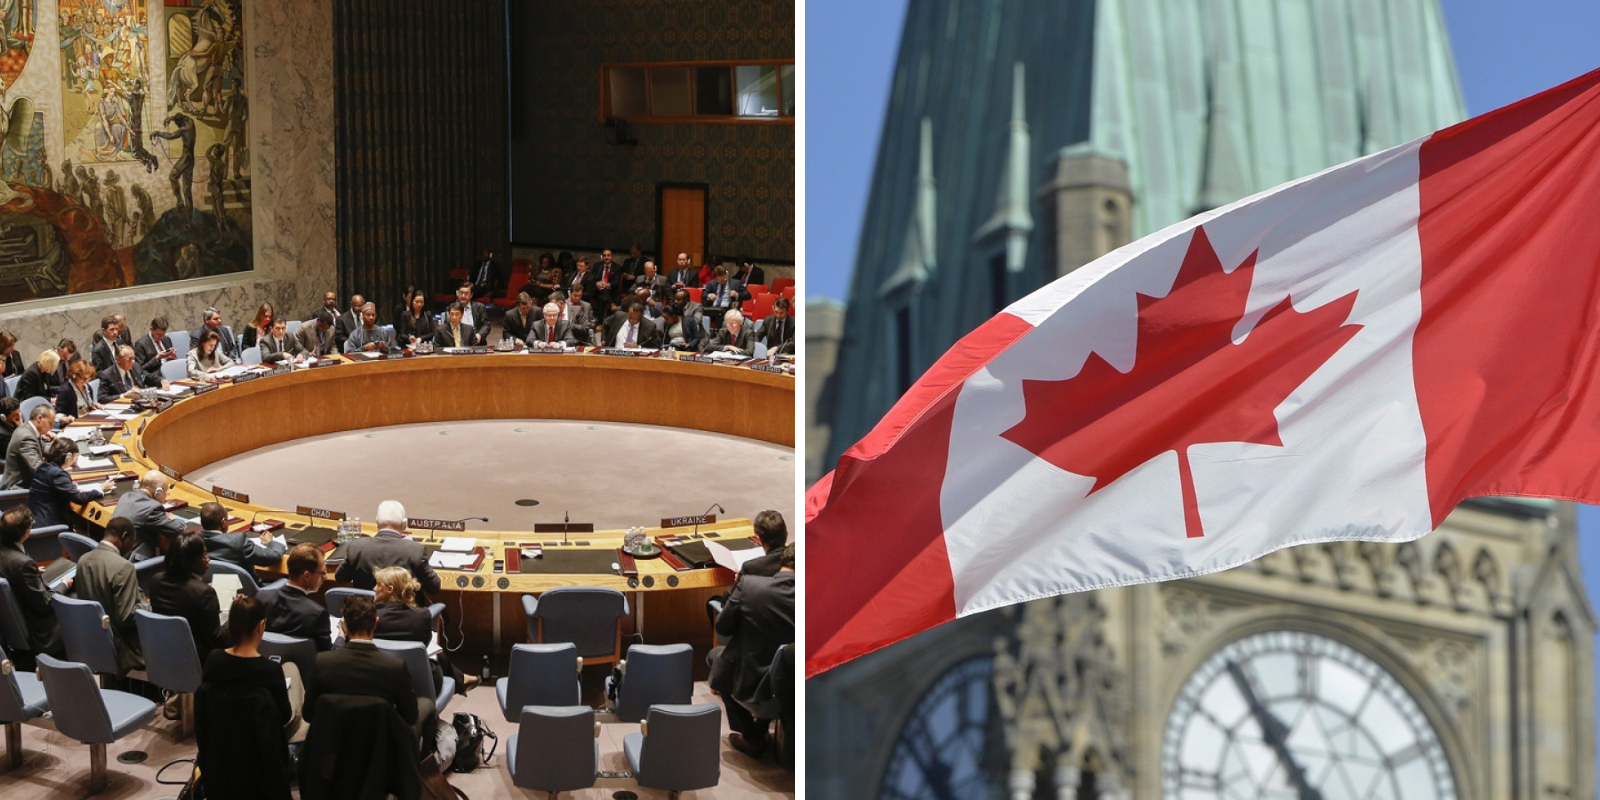 Canada's UN Security Council seat is not worth the cost